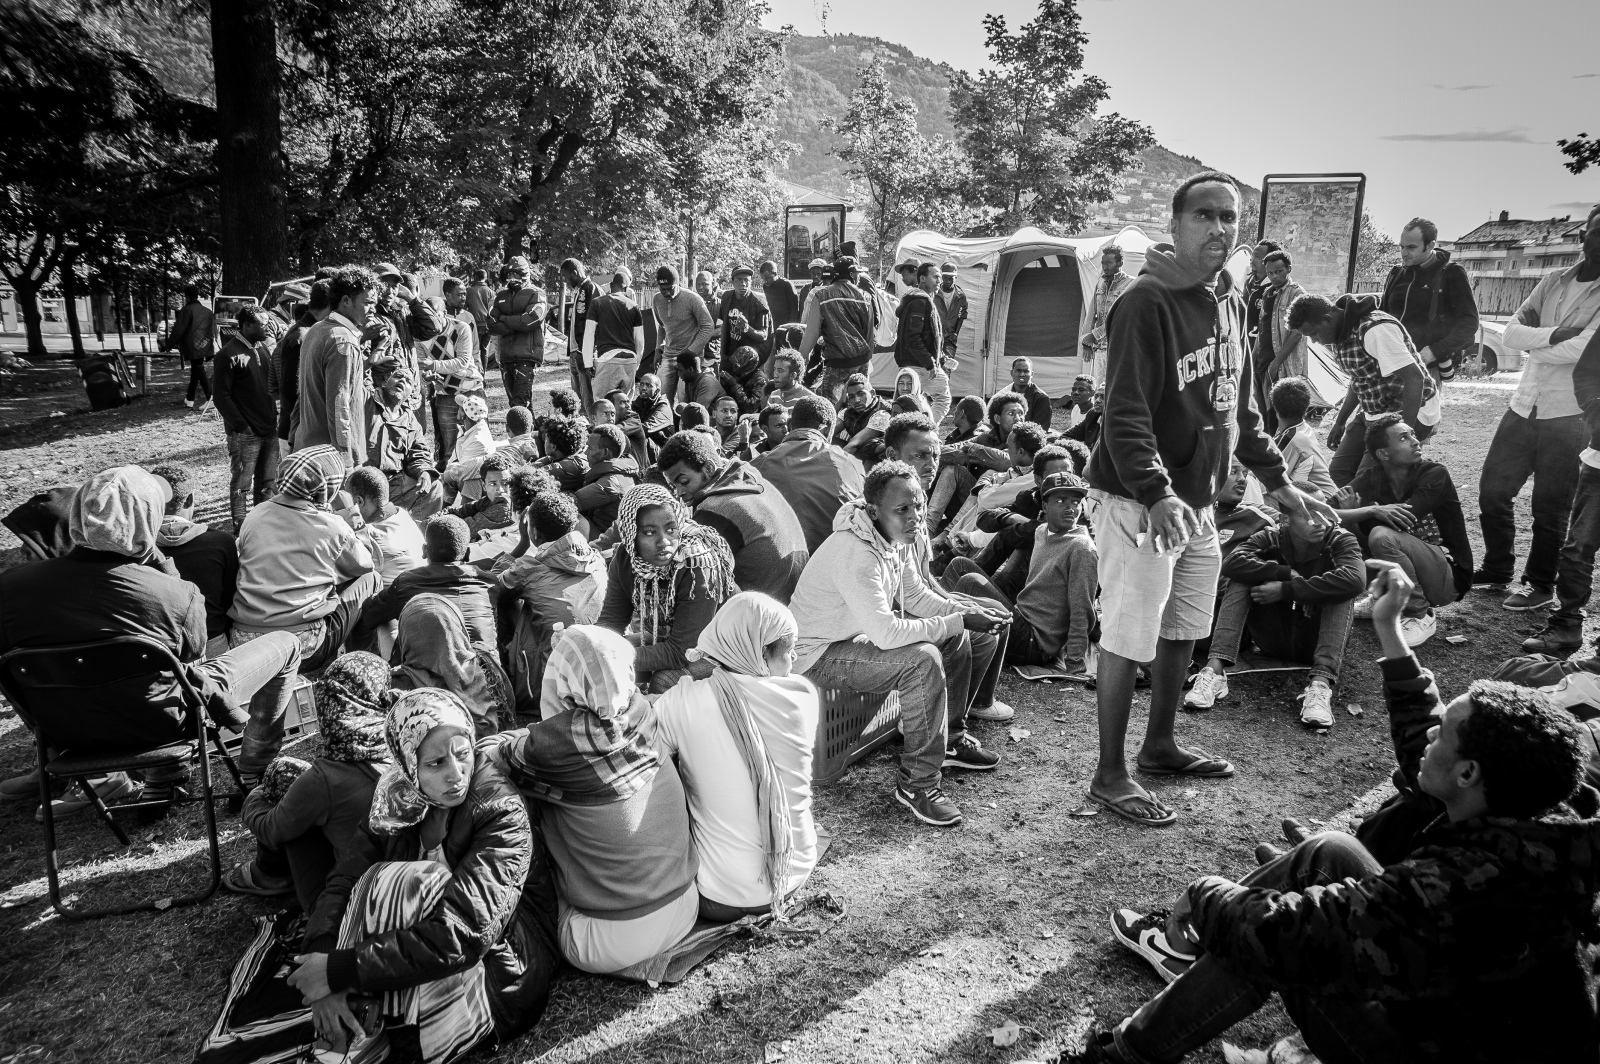 A large group of migrants waits for the opening of a refugee camp built by the Italian Red Cross.